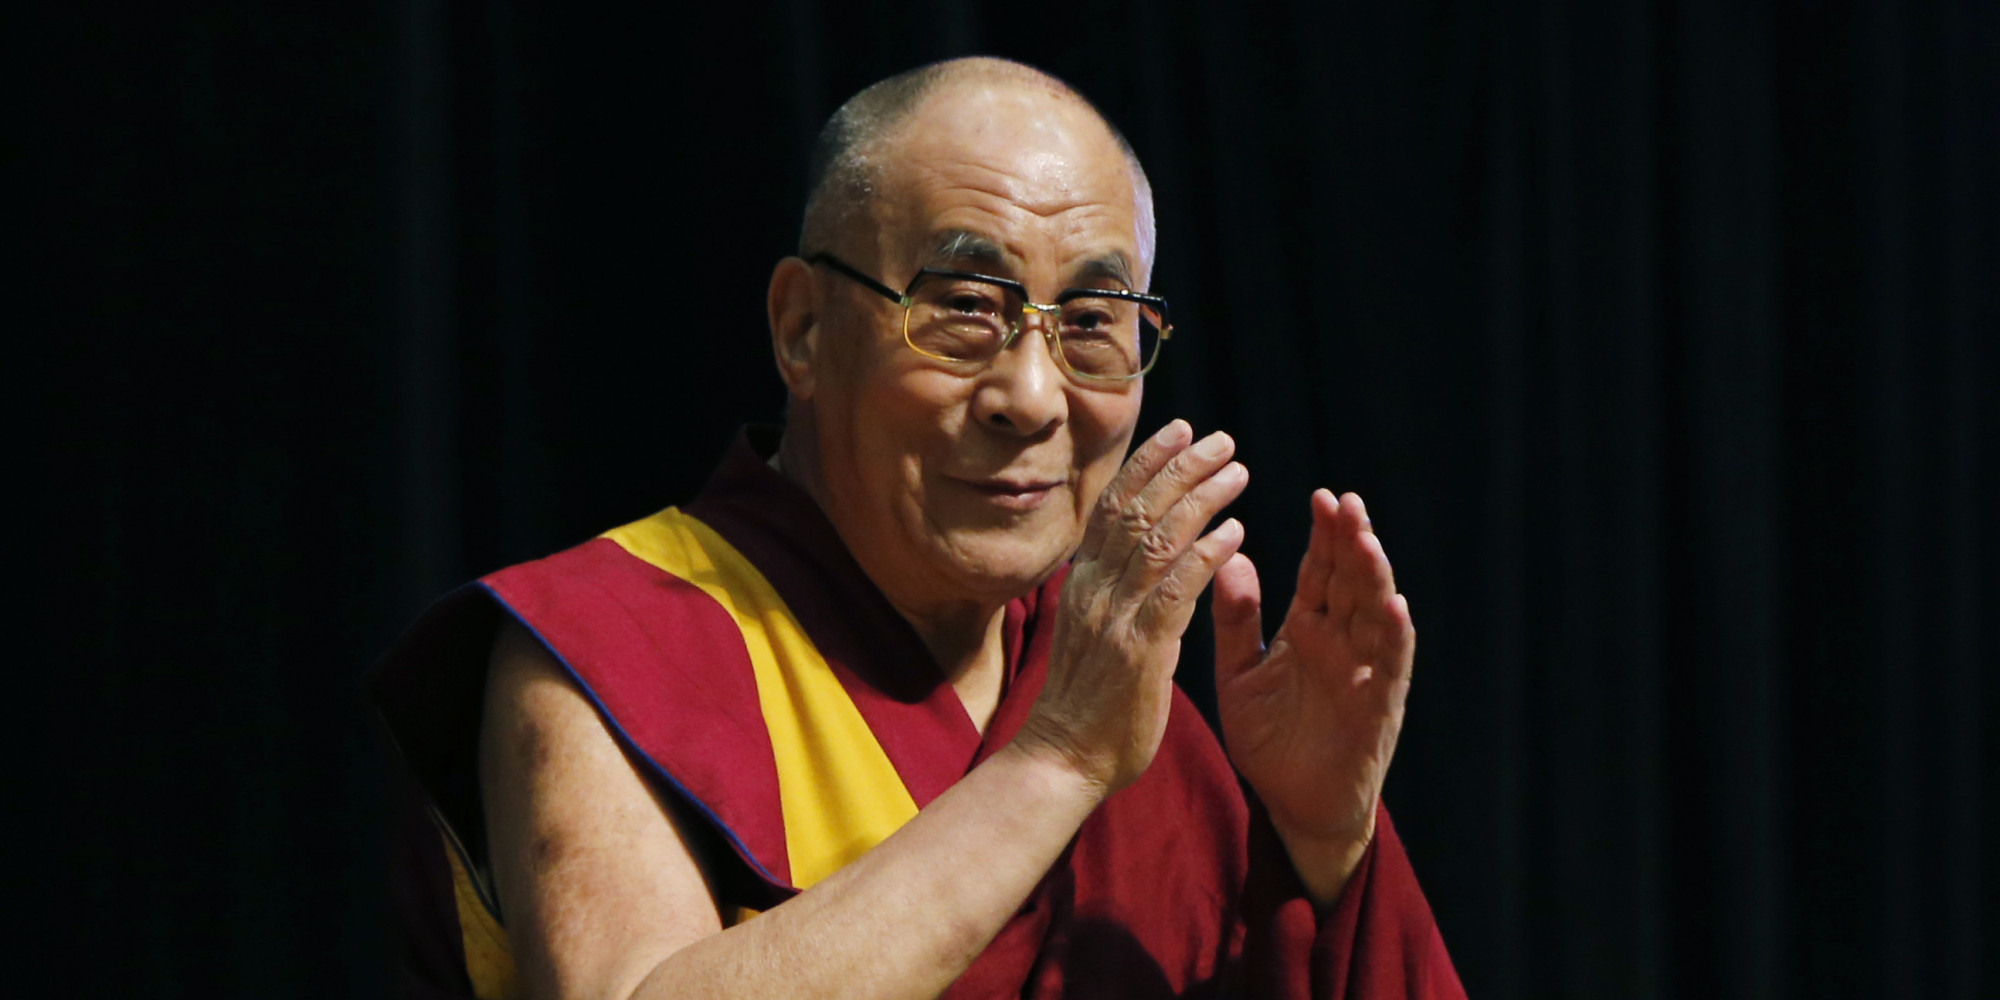 Tibetan spiritual leader the Dalai Lama greets an audience before his religious speech in Tokyo, Monday, Nov. 25, 2013. (Photo courtesy/AP Photo/Koji Sasahara)